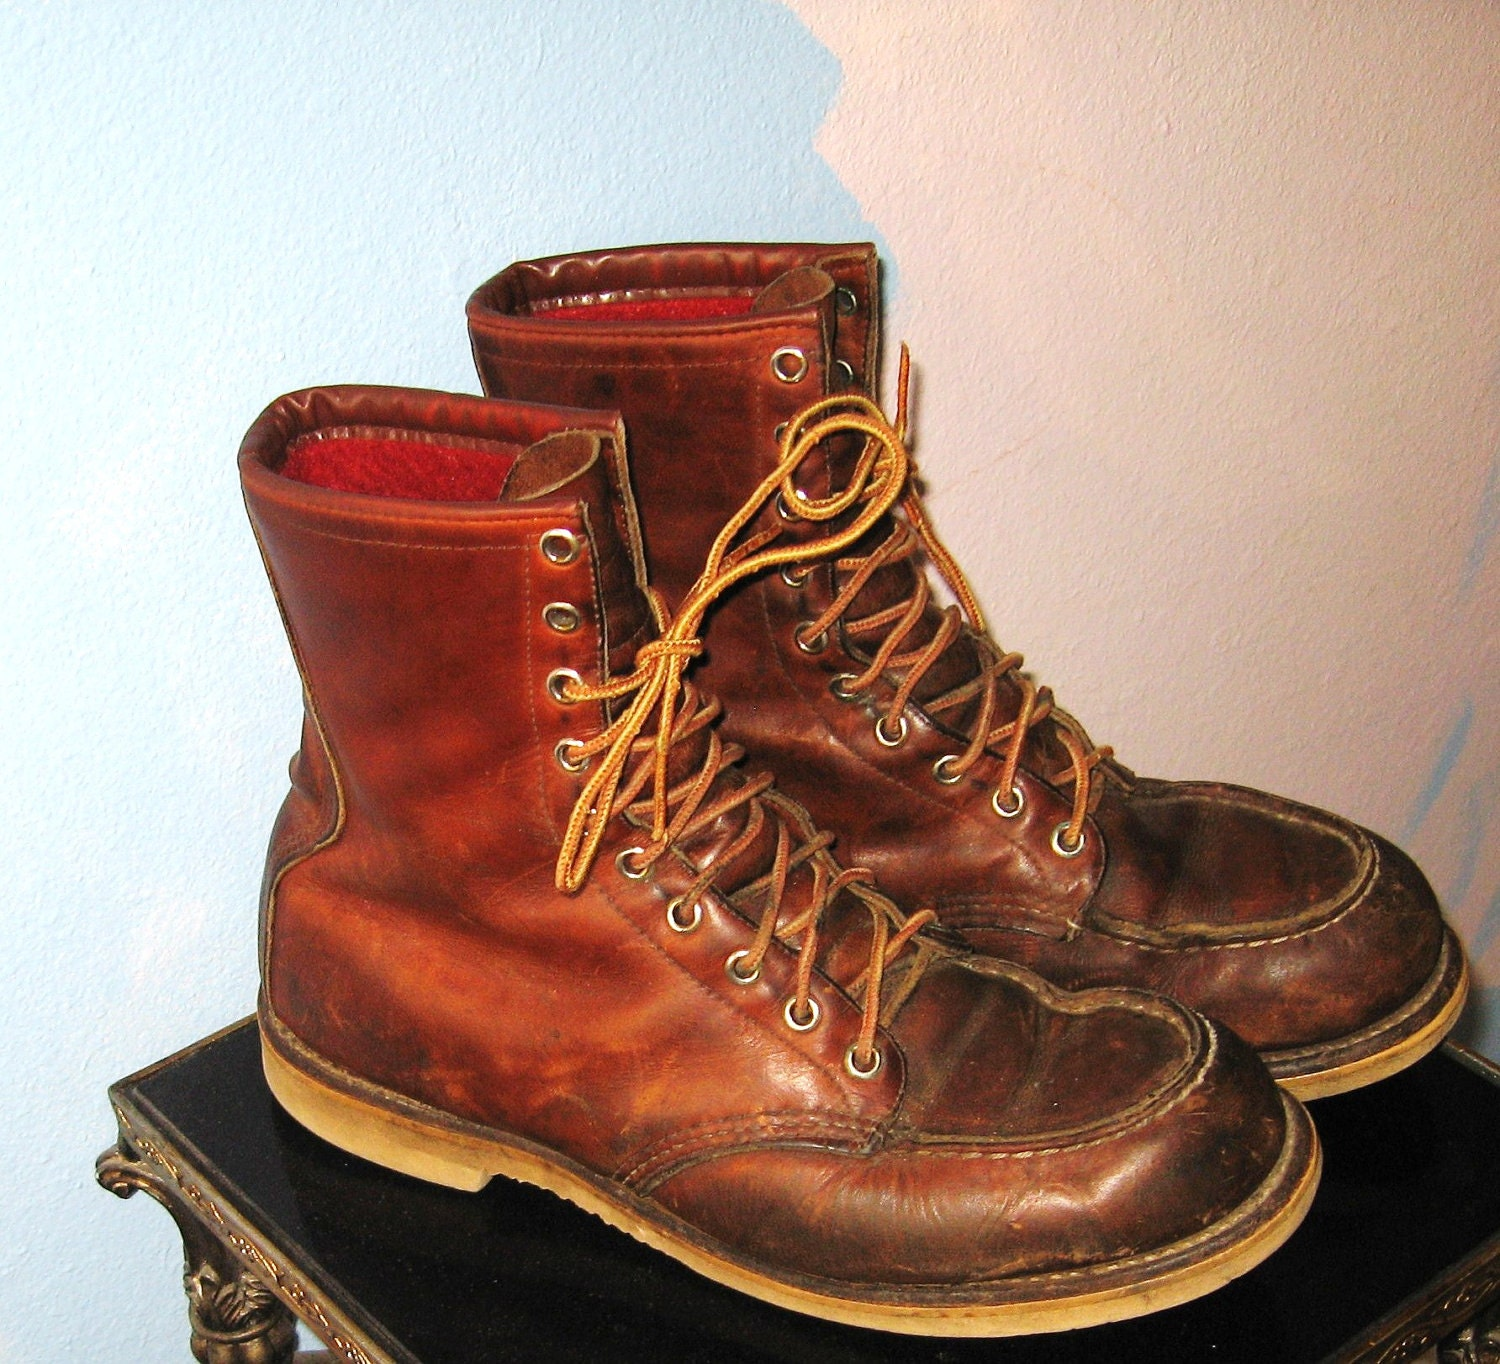 Vintage Red Wing Work Boots Size 8.5 Reserved